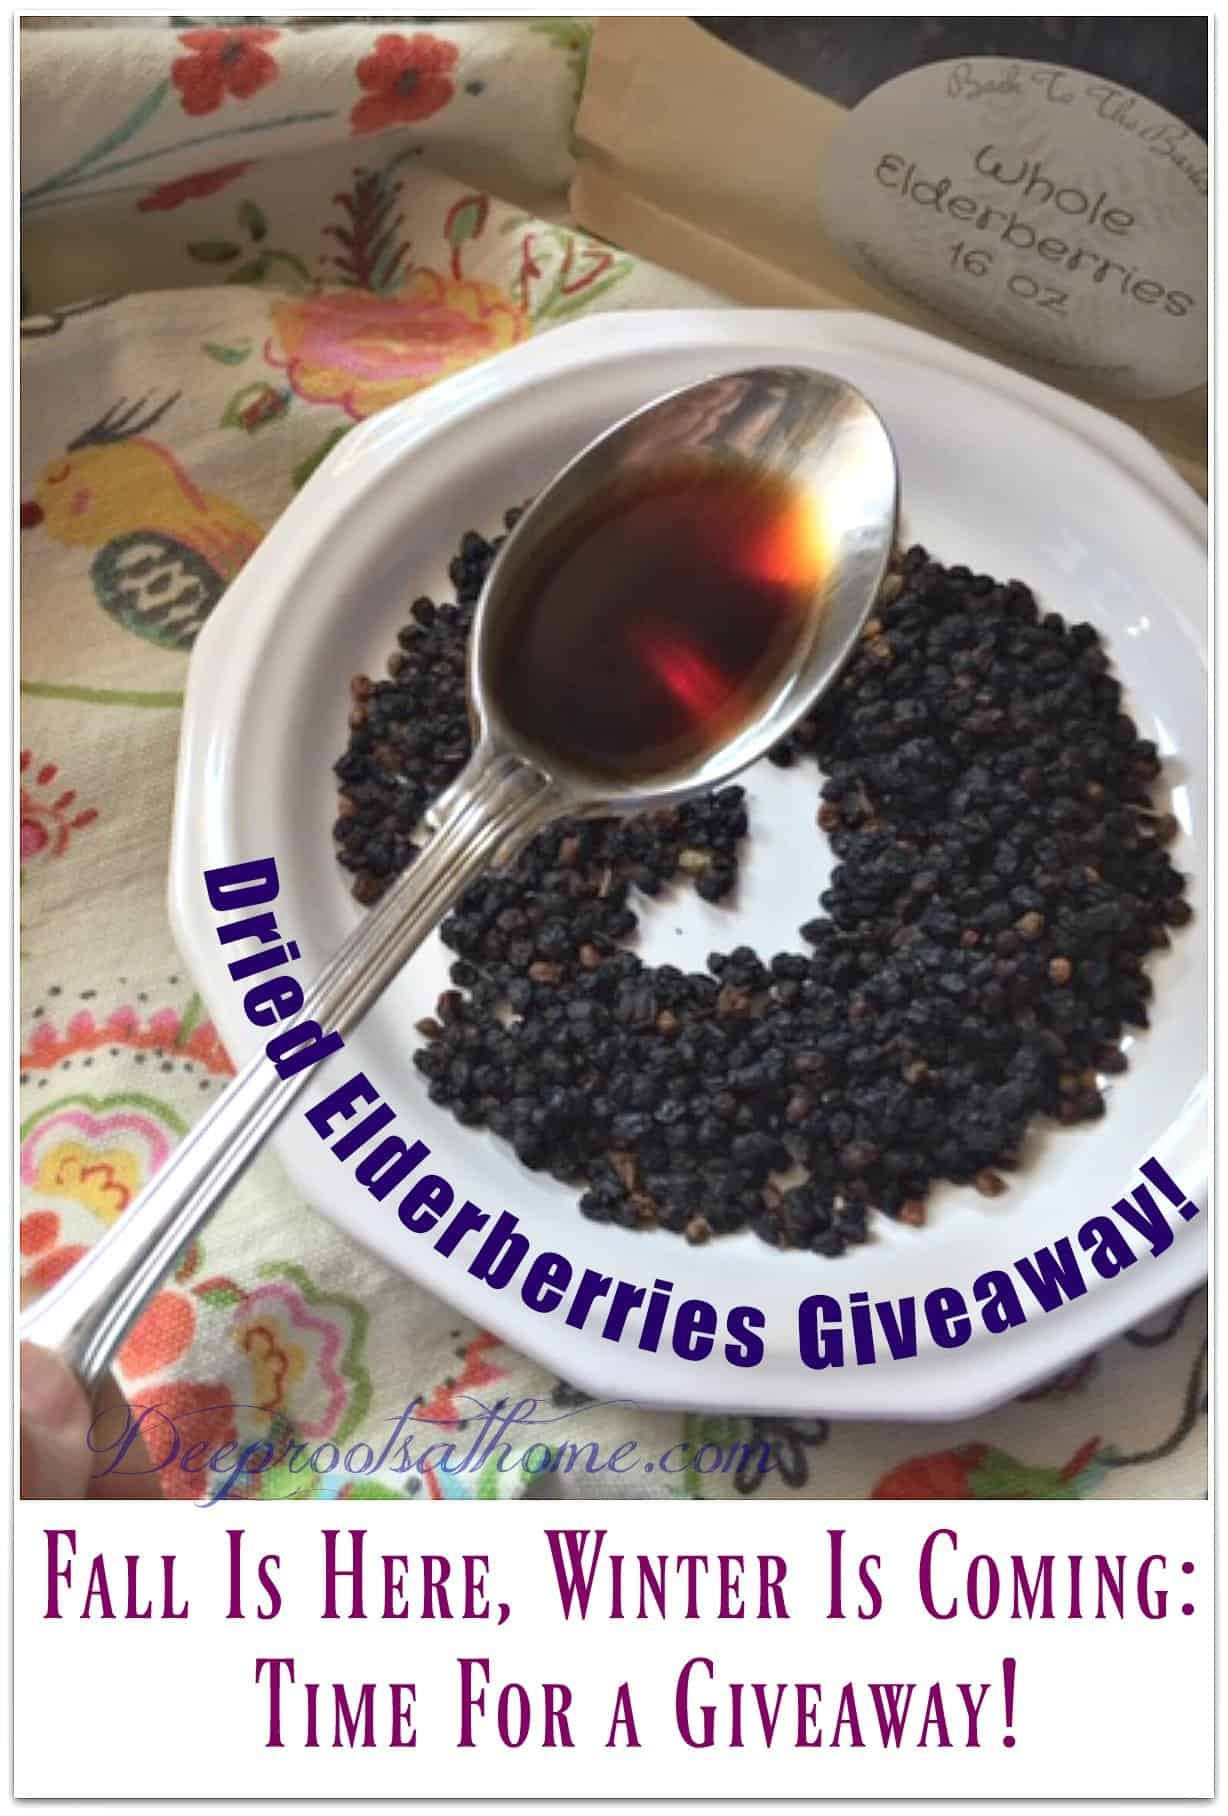 Fall Is Here, Winter Is Coming: Time For a Dried Elderberries Giveaway. spoon